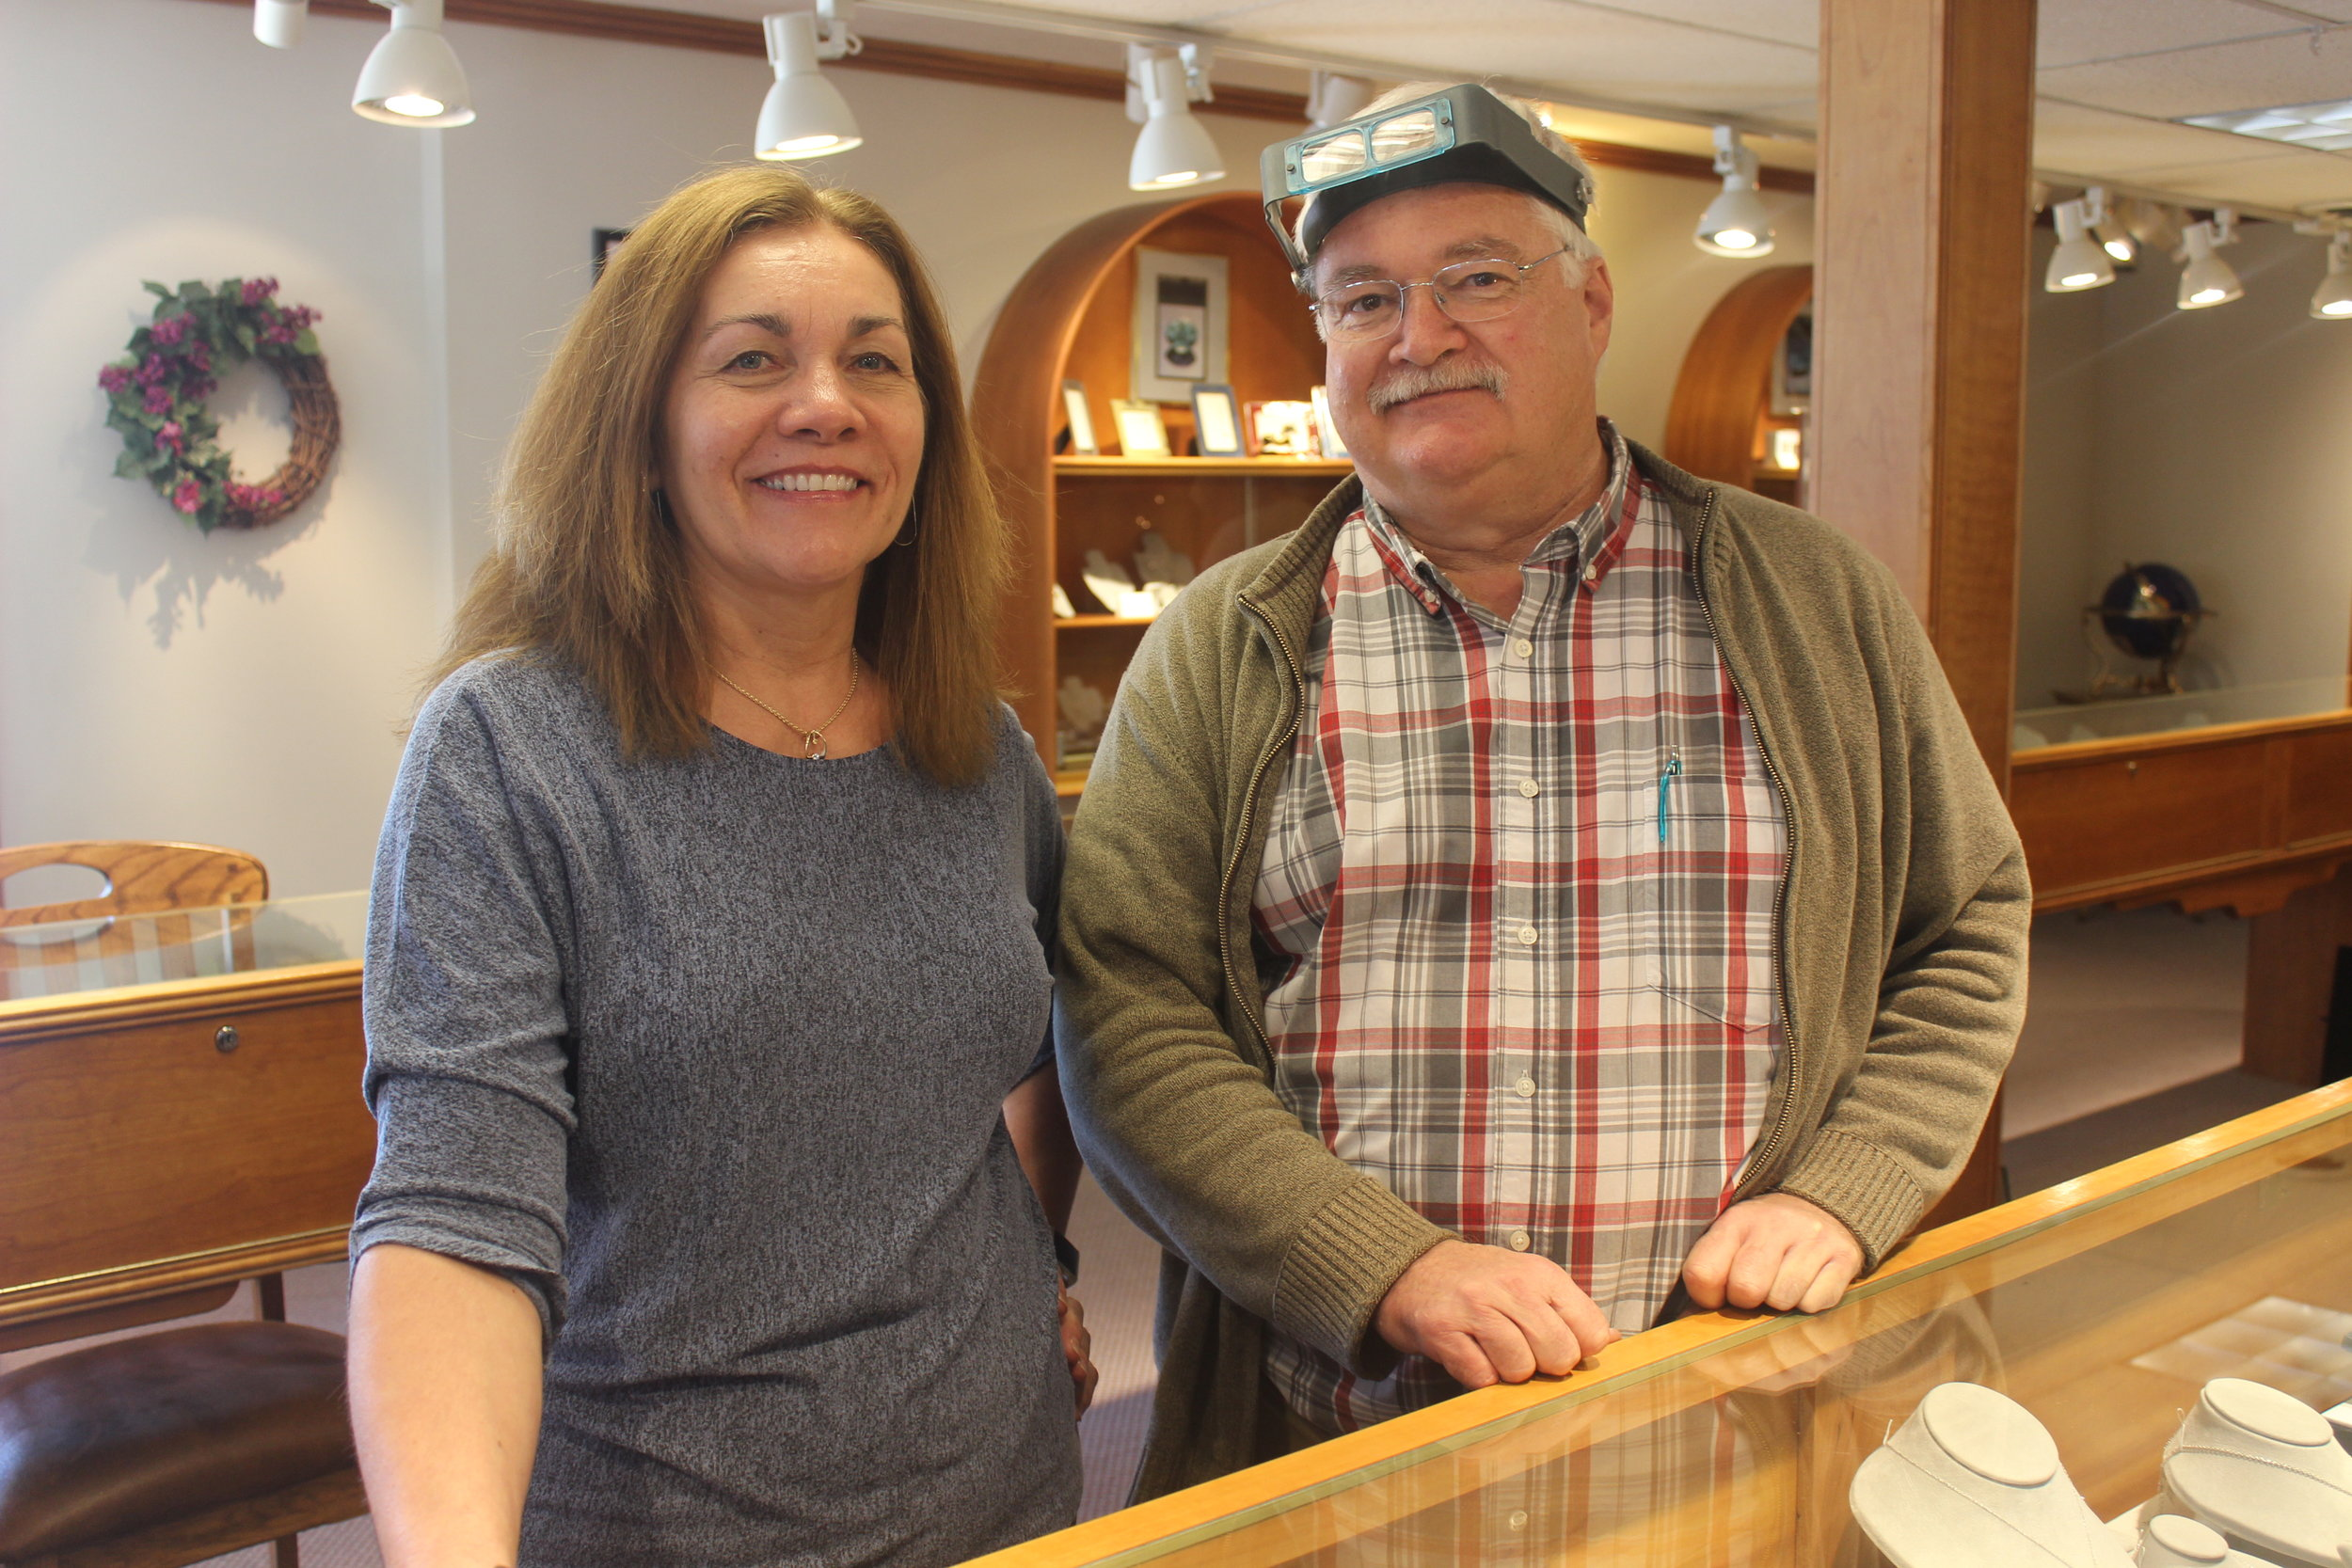 Siblings Diane Bassalin and Tim Schneller of Timco Jewelers and Goldsmiths